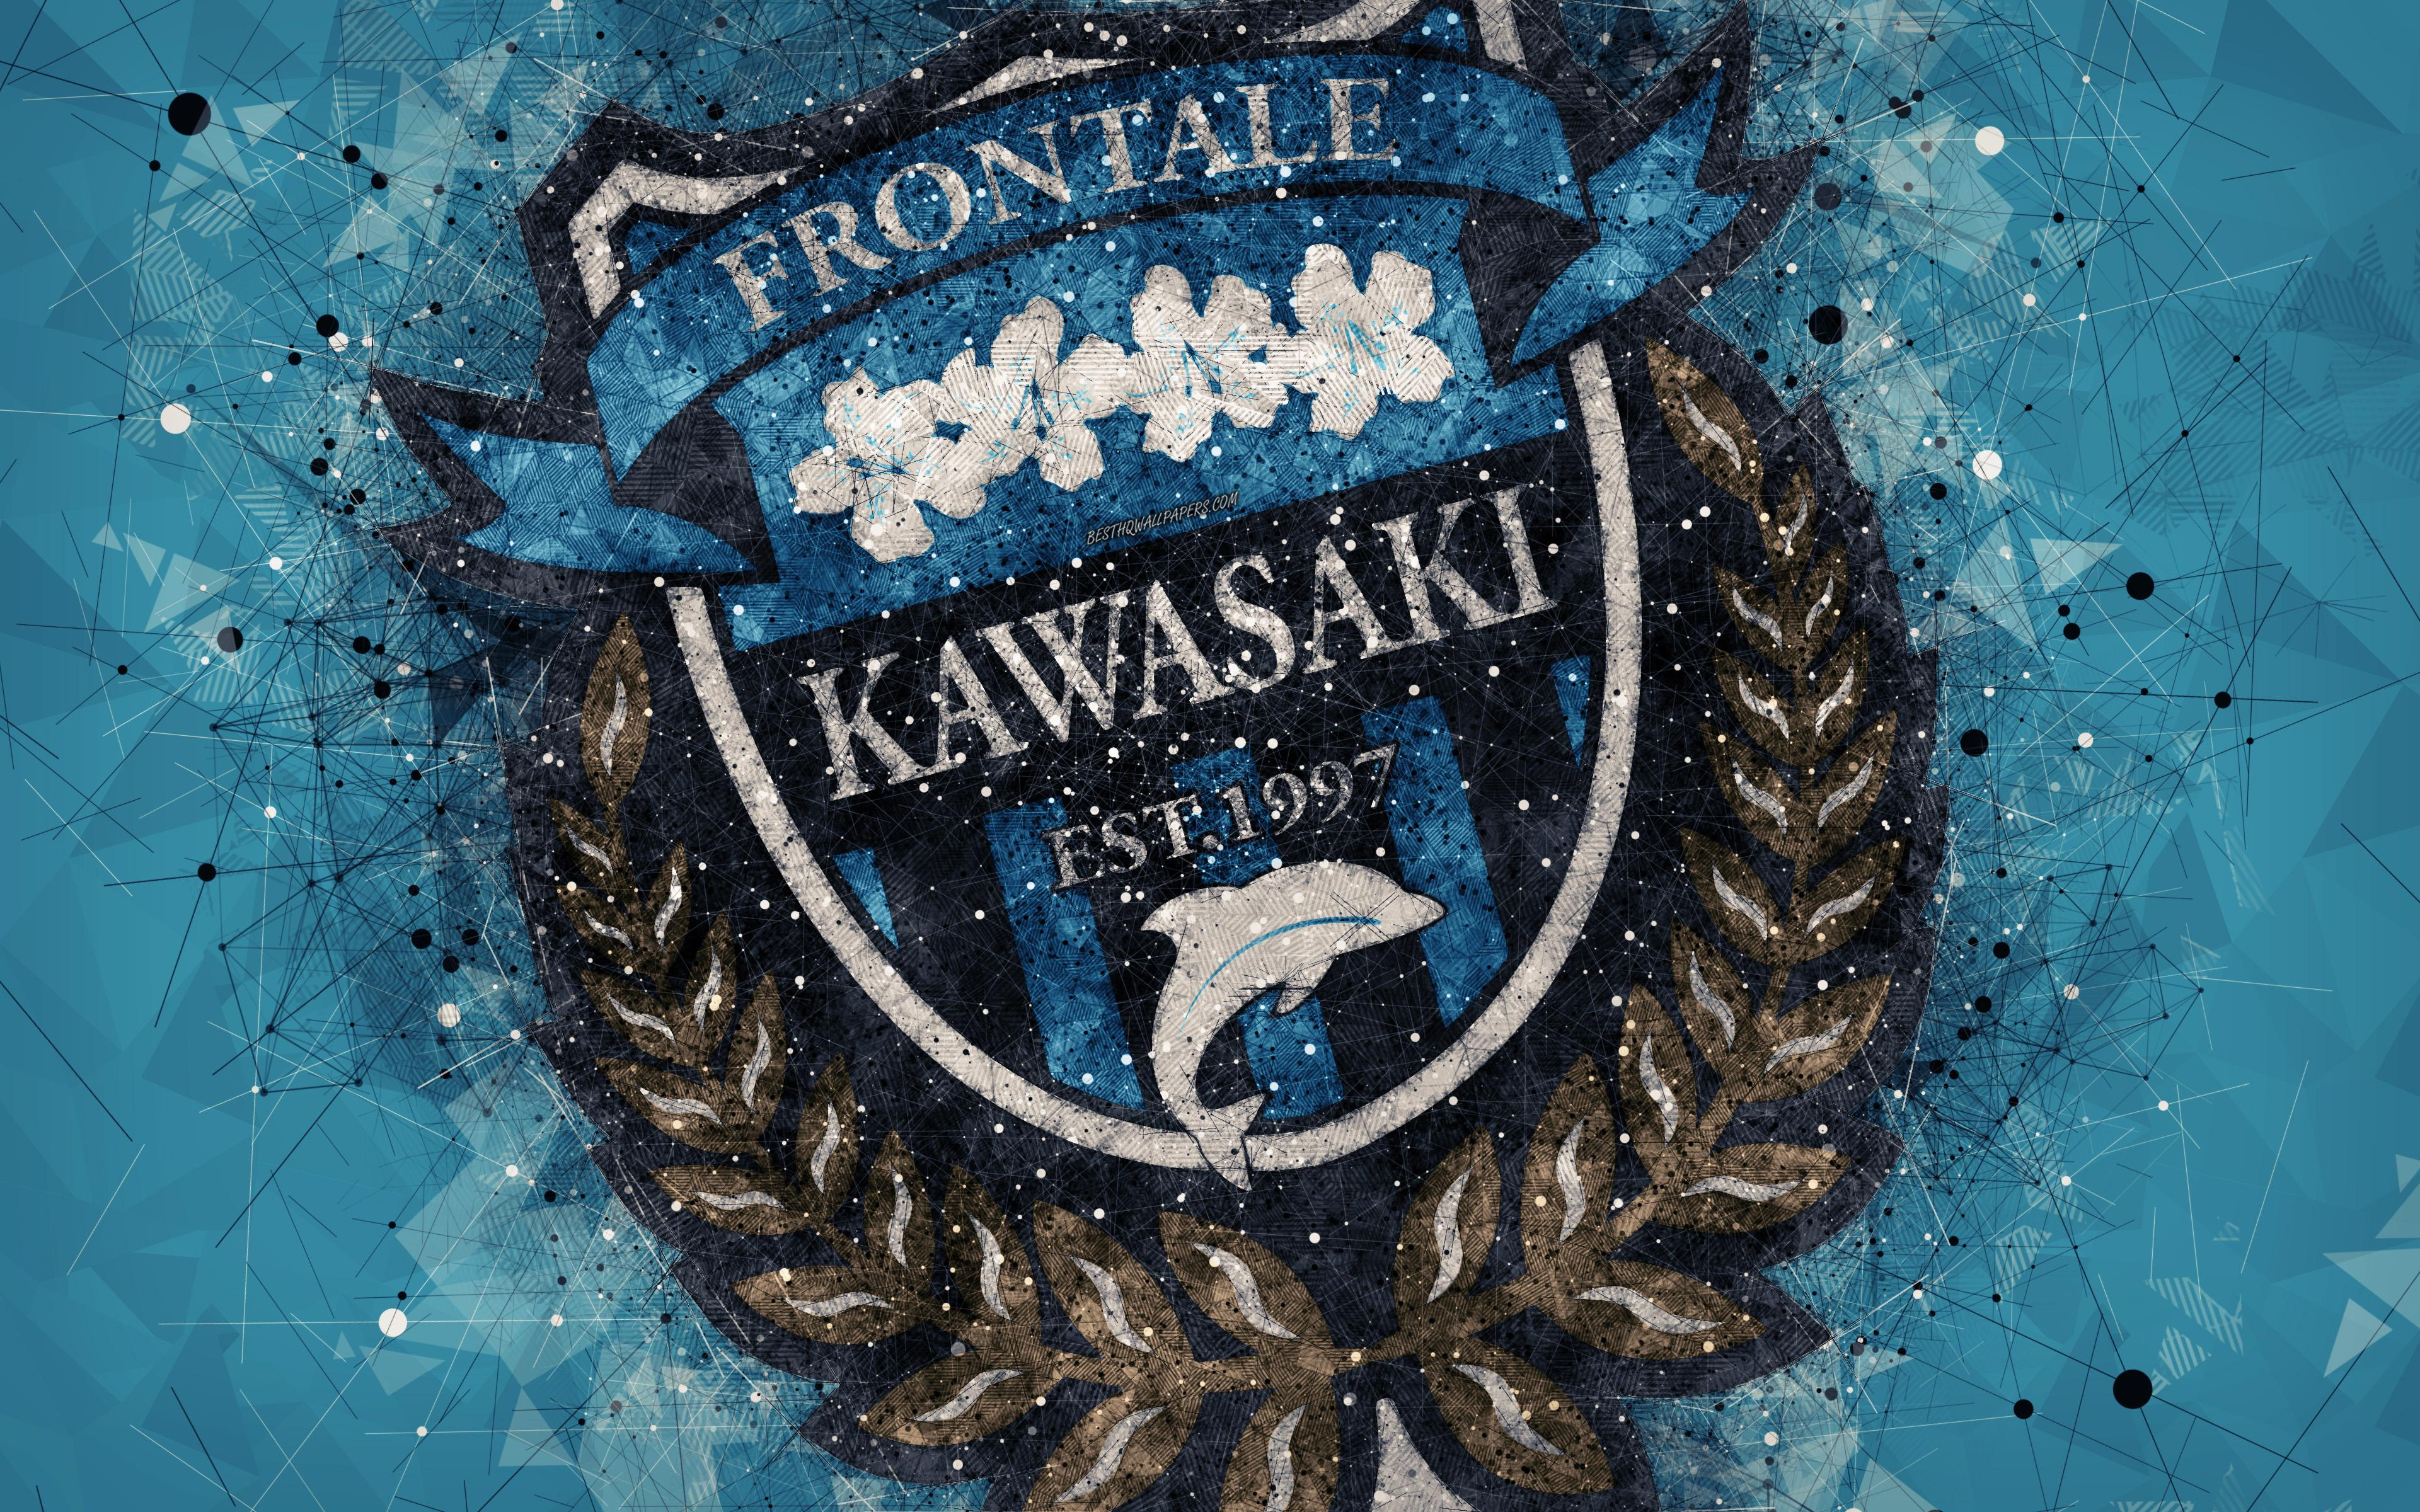 Download wallpapers Kawasaki Frontale, 4k, Japanese football club